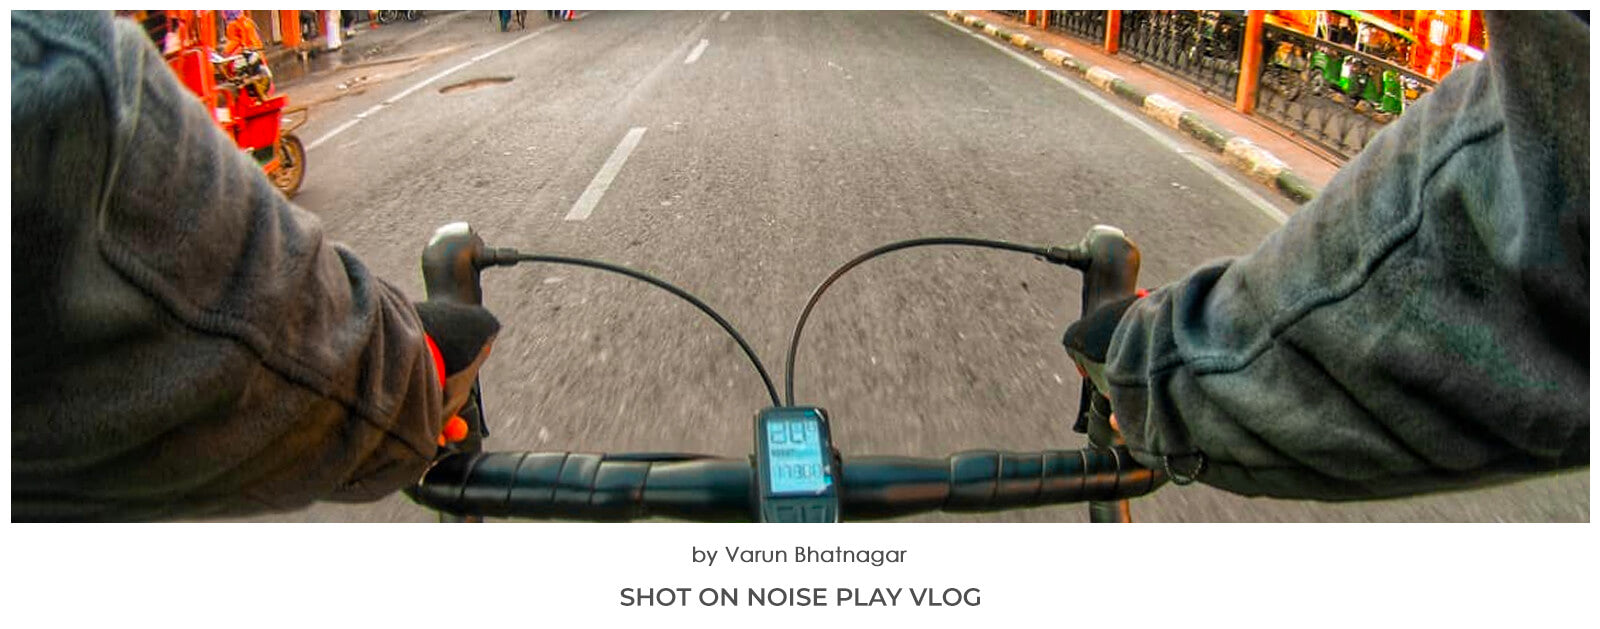 Go Noise Black Friday Sale Noise Play Vlog Action Camera